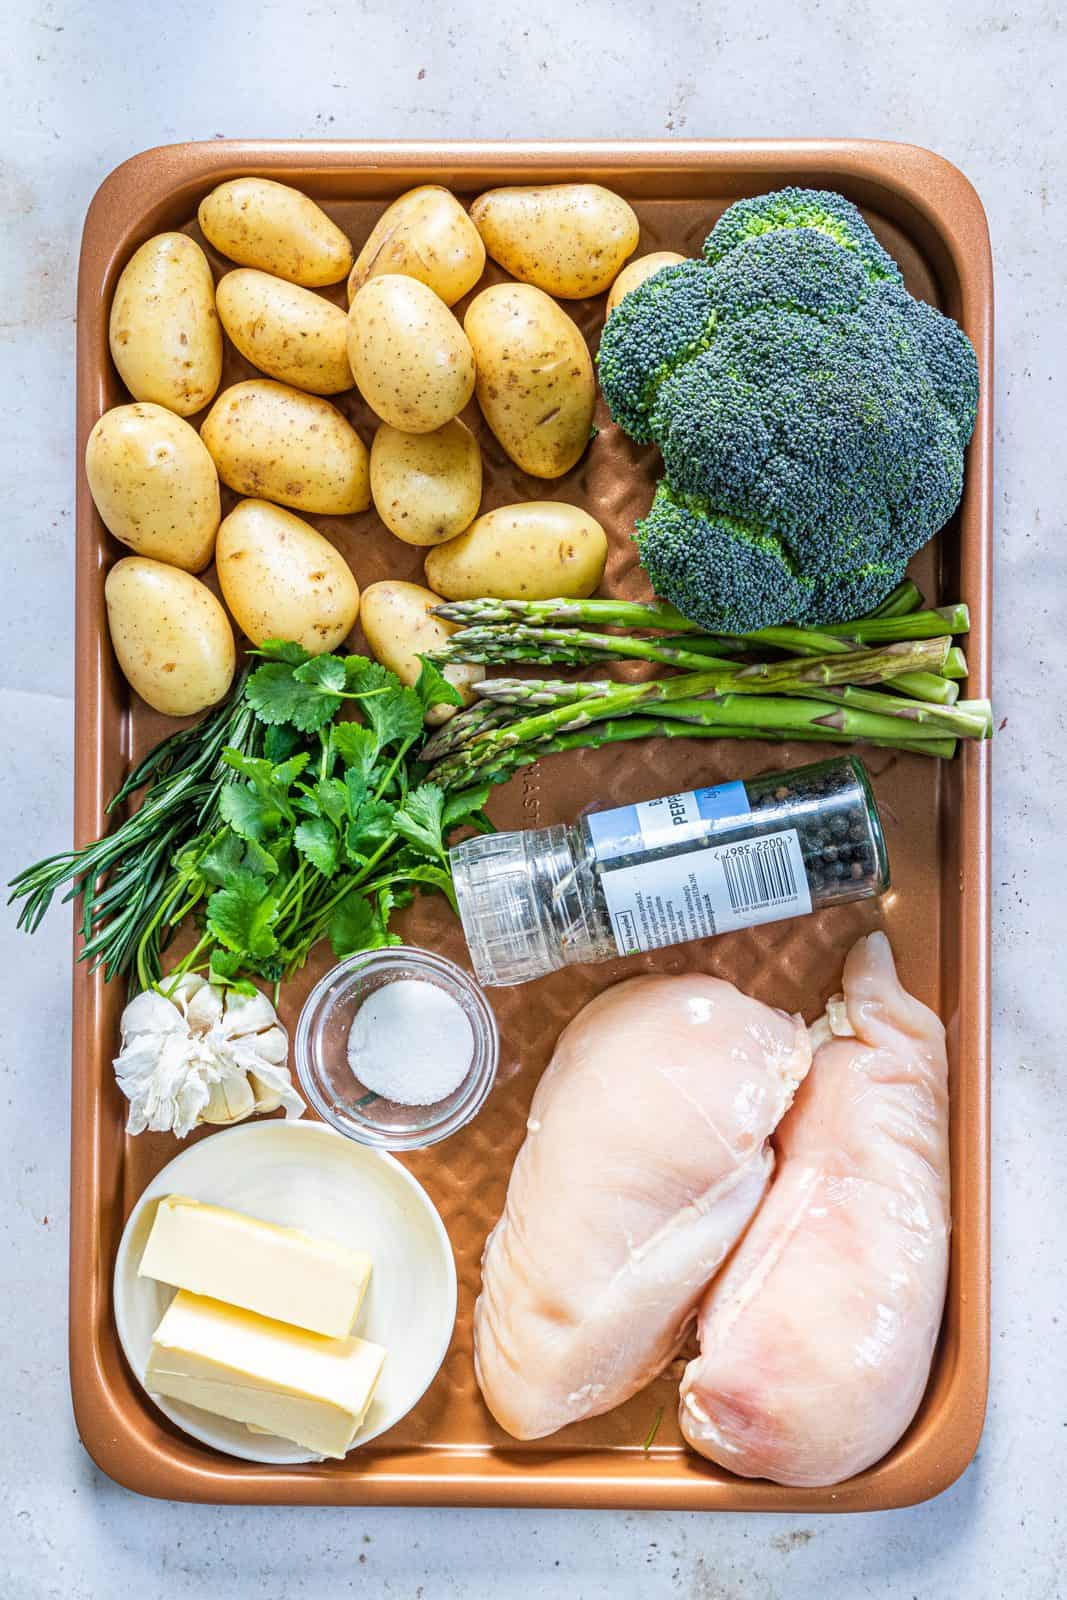 Ingredients needed: salted butter, garlic, parsley, salt, pepper, chicken breasts, baby potatoes, broccoli, asparagus and rosemary sprigs.